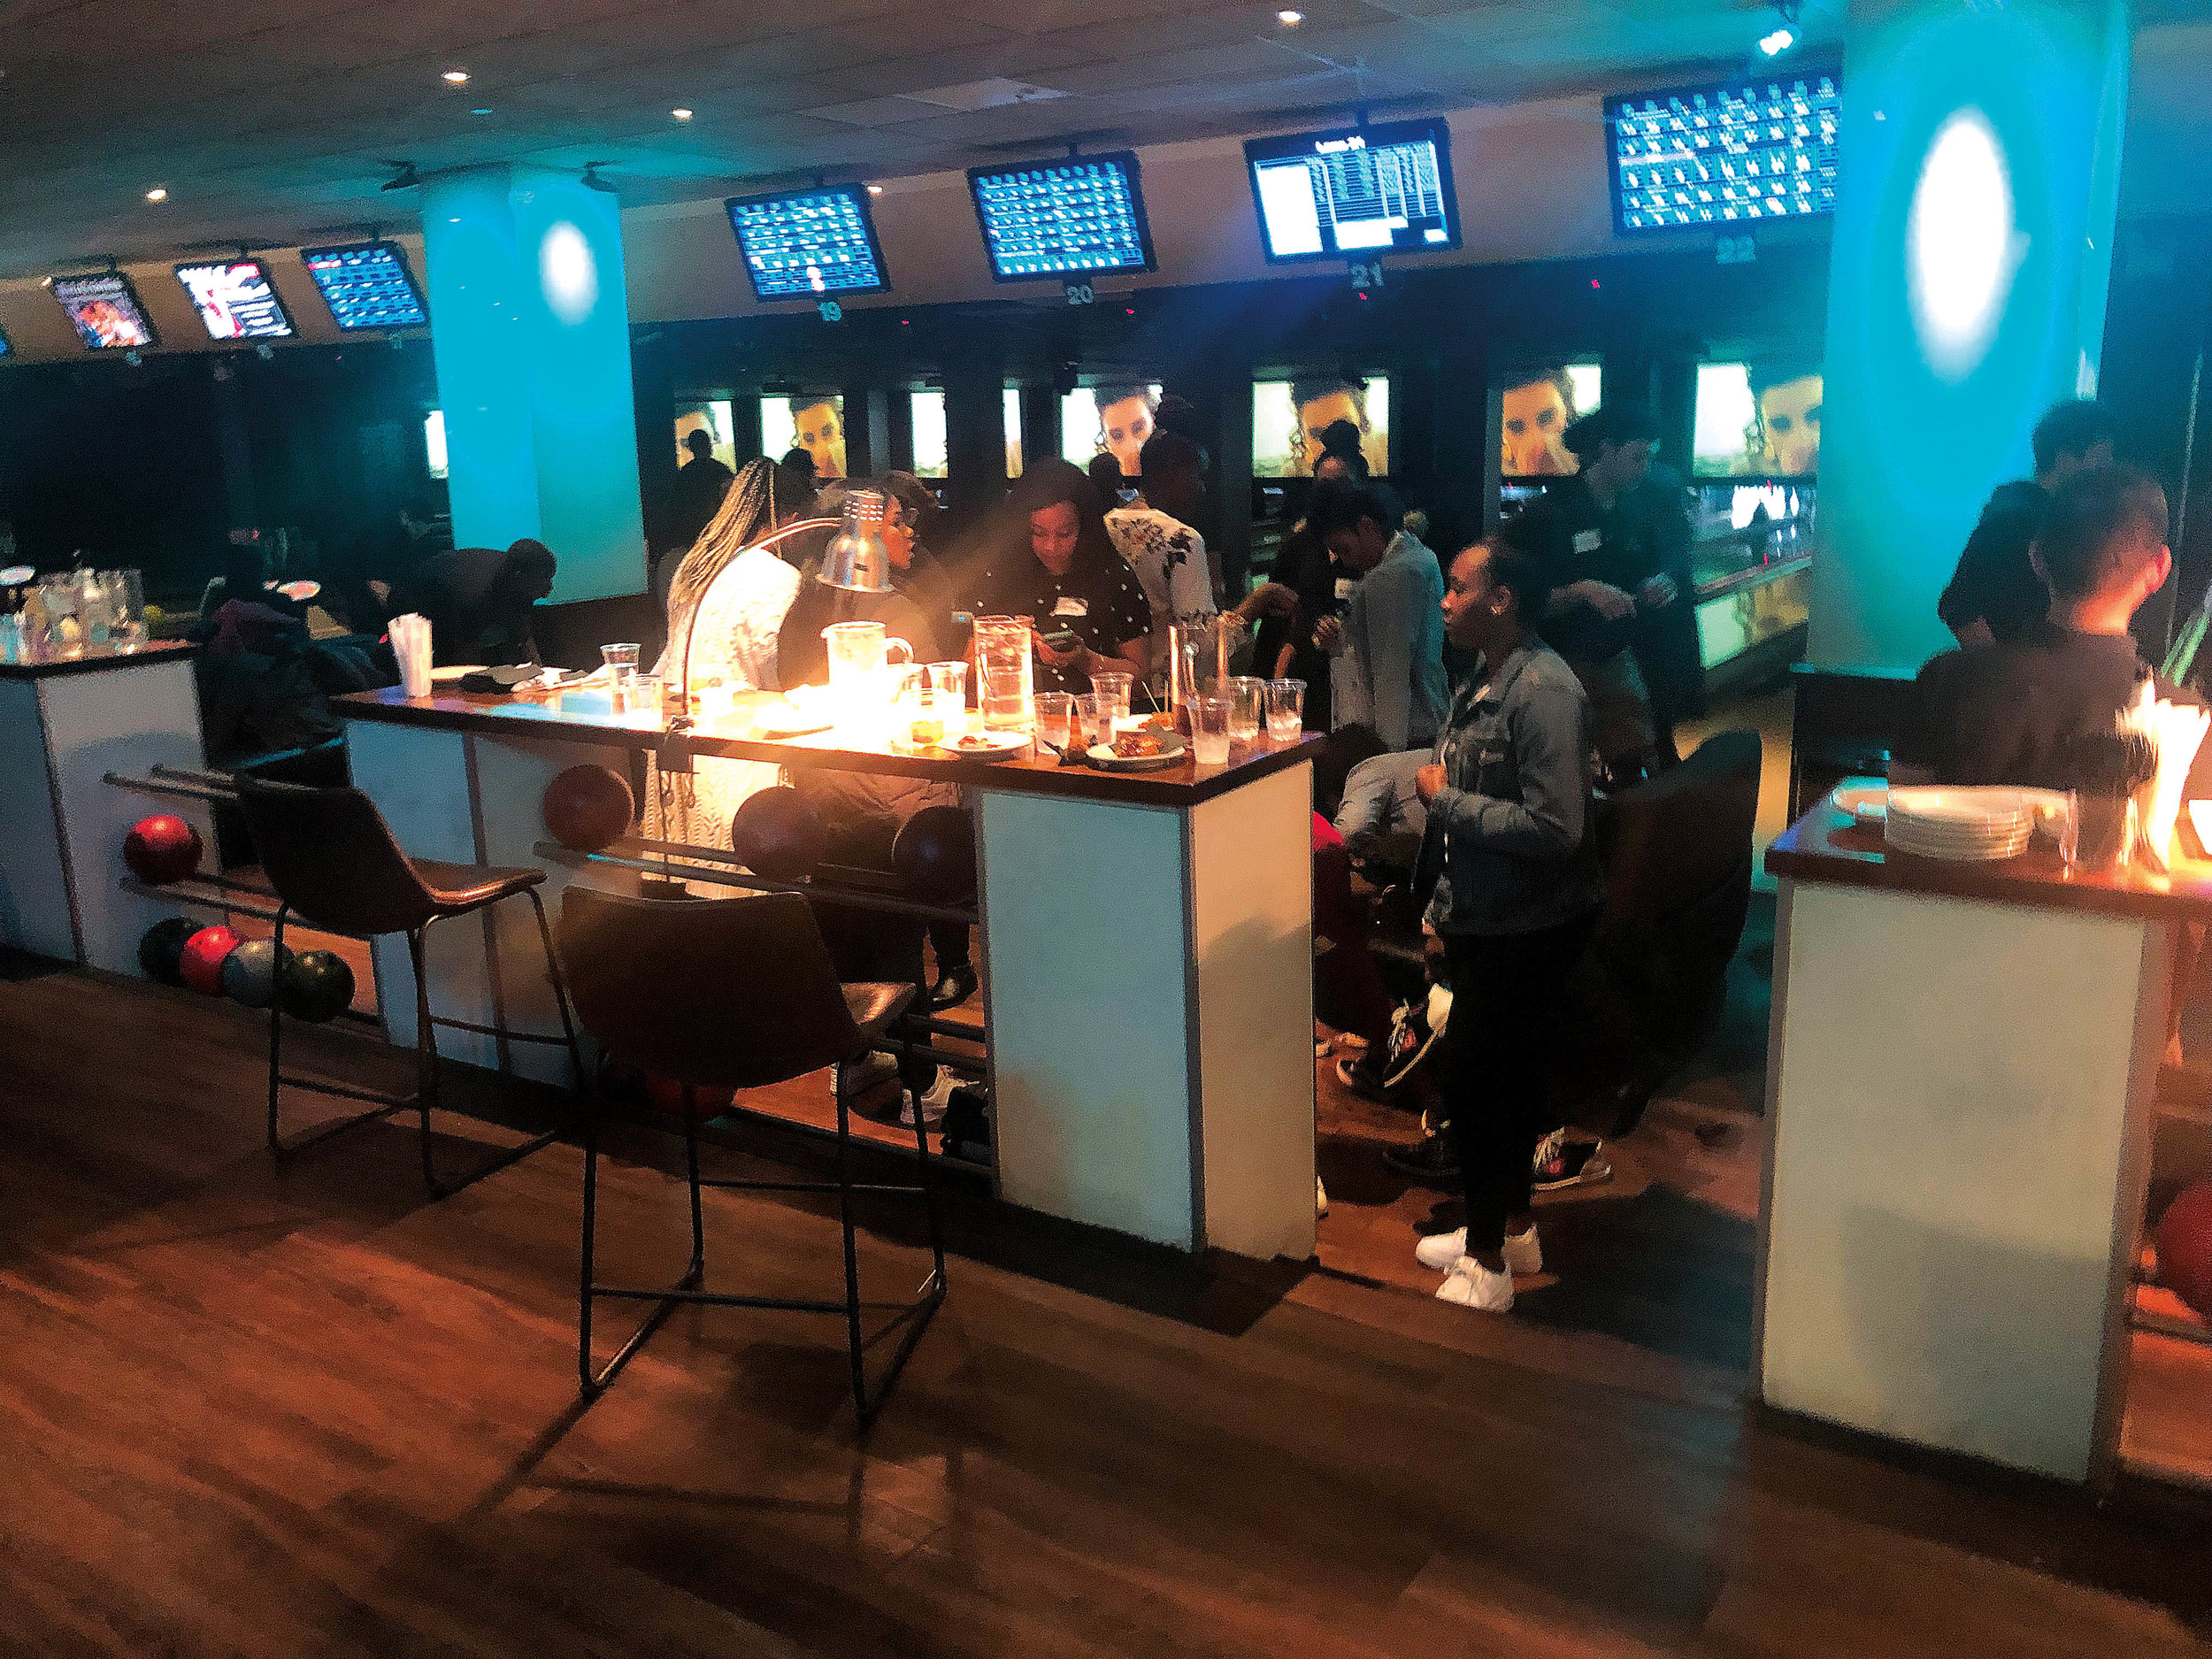 Attendees enjoyed billiards, bowling, food, and more in New York City.